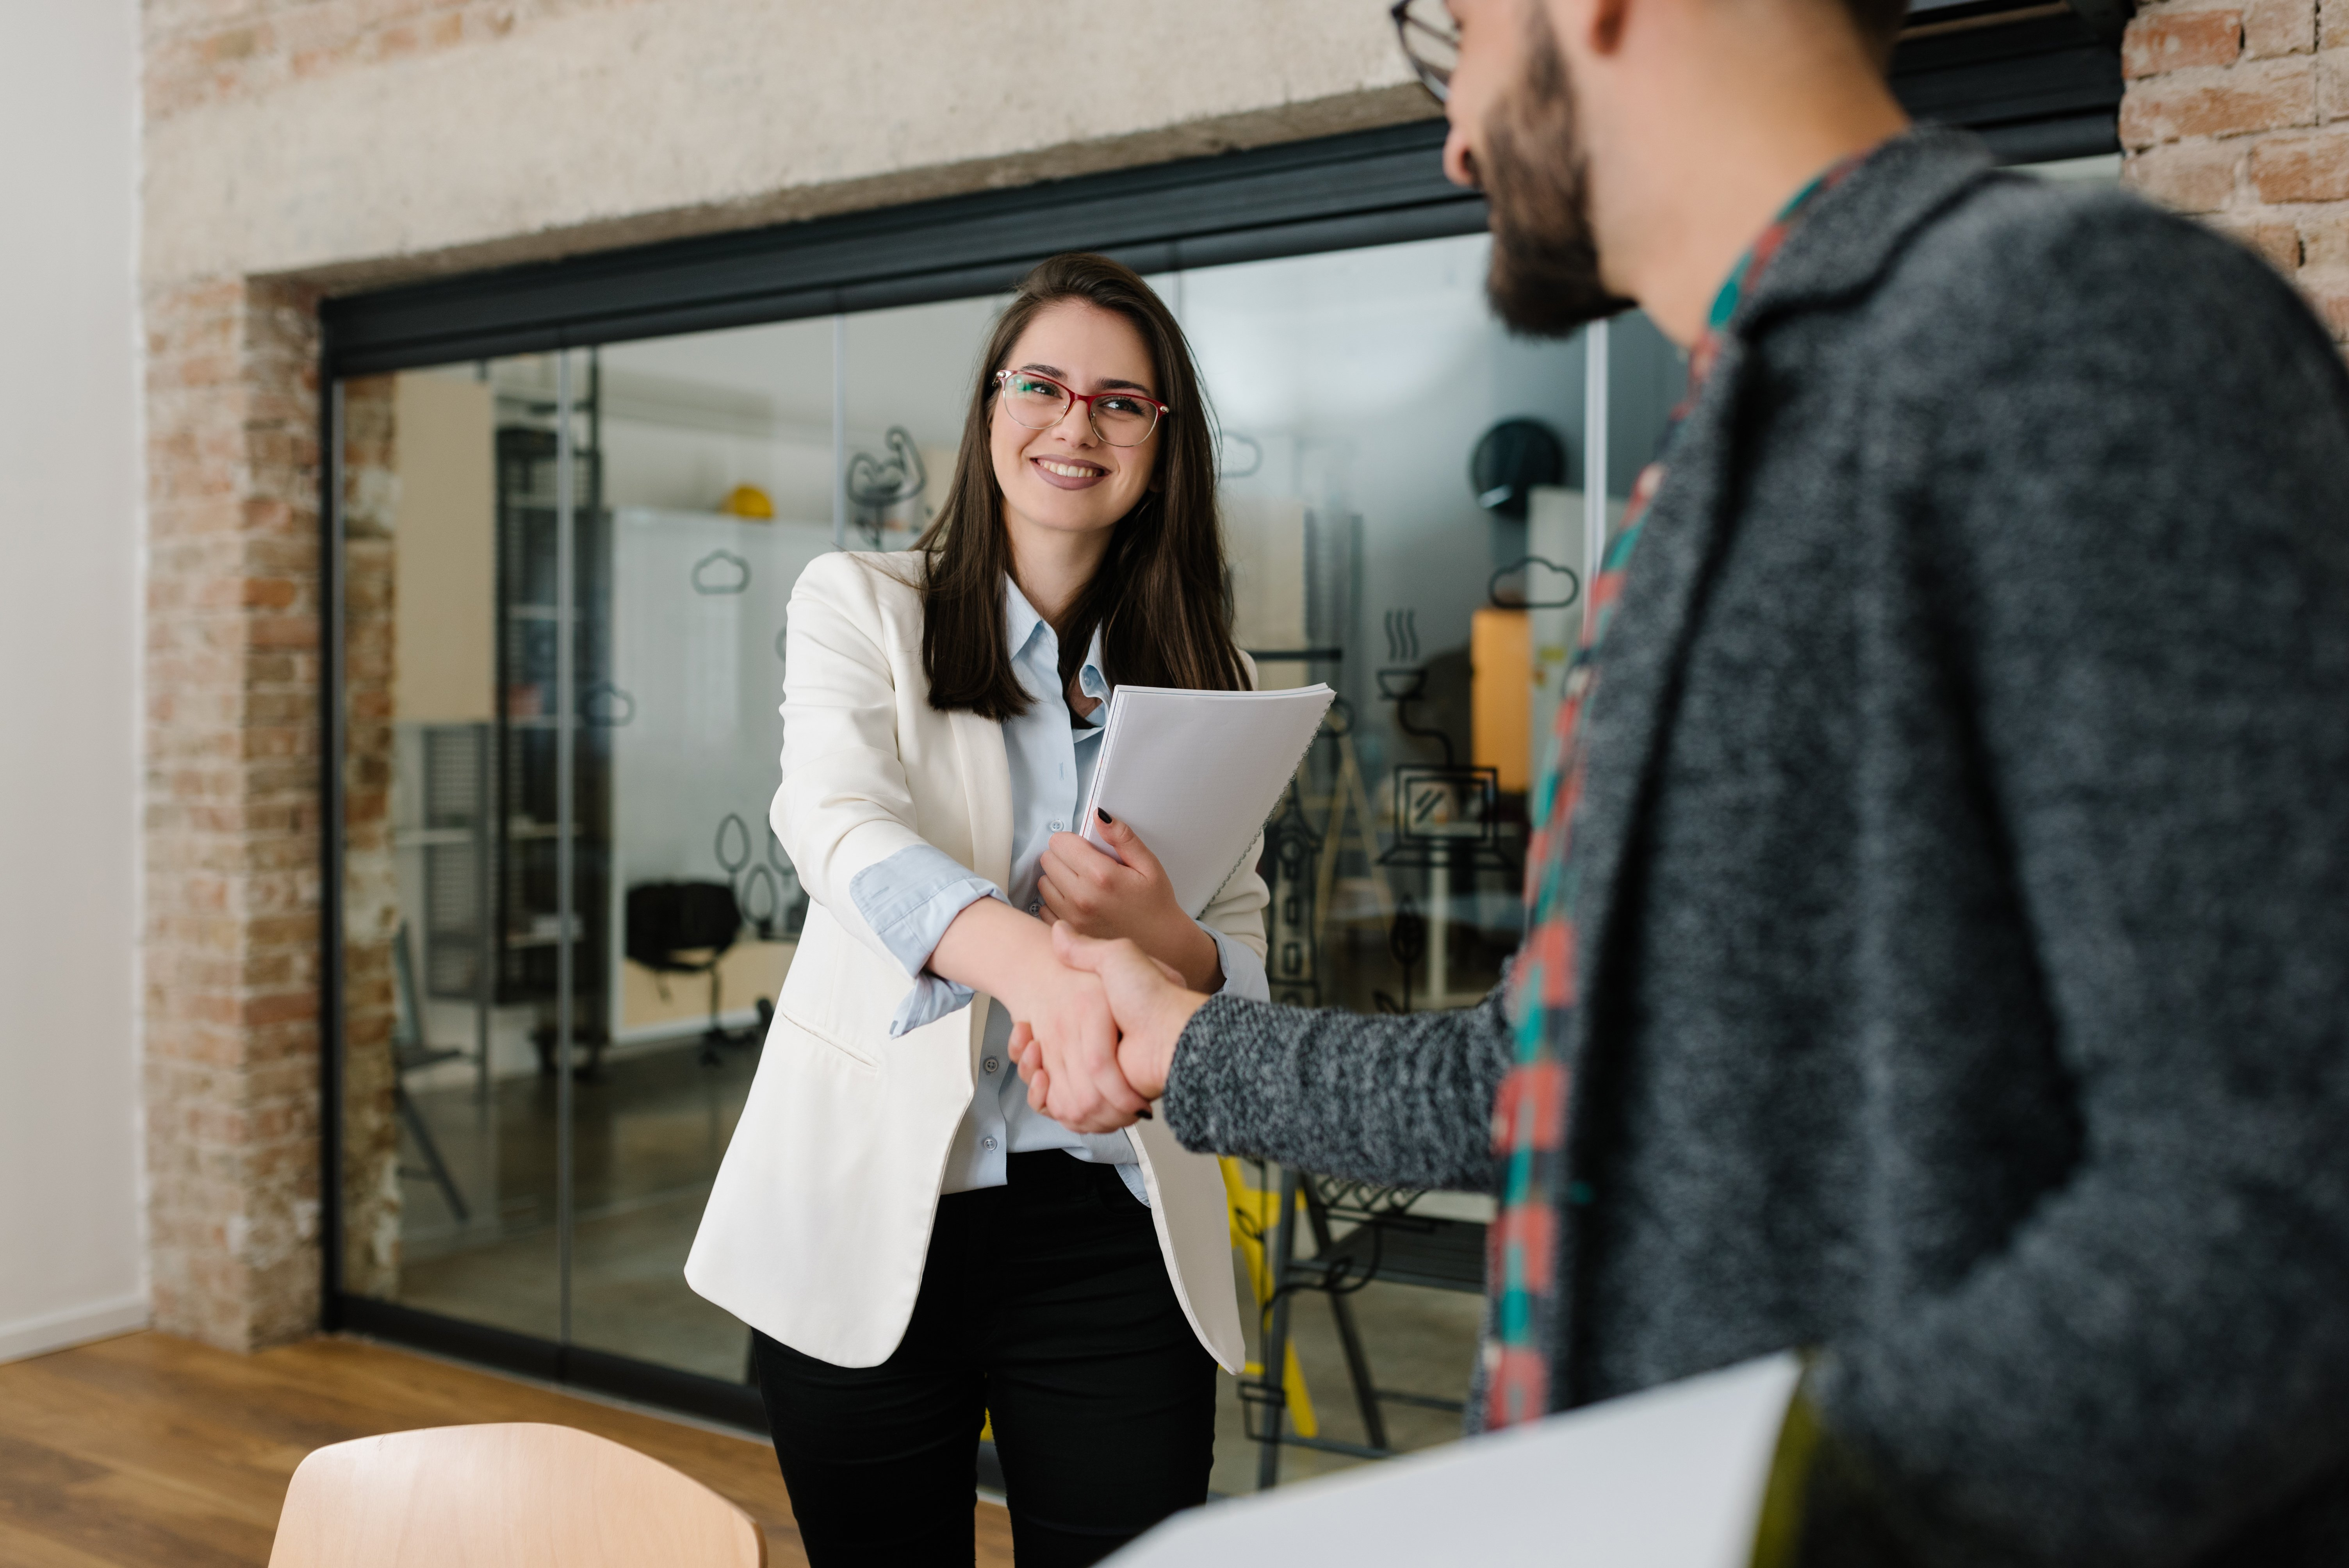 3 Tips to Help You Have a Great First Day at Your Internship